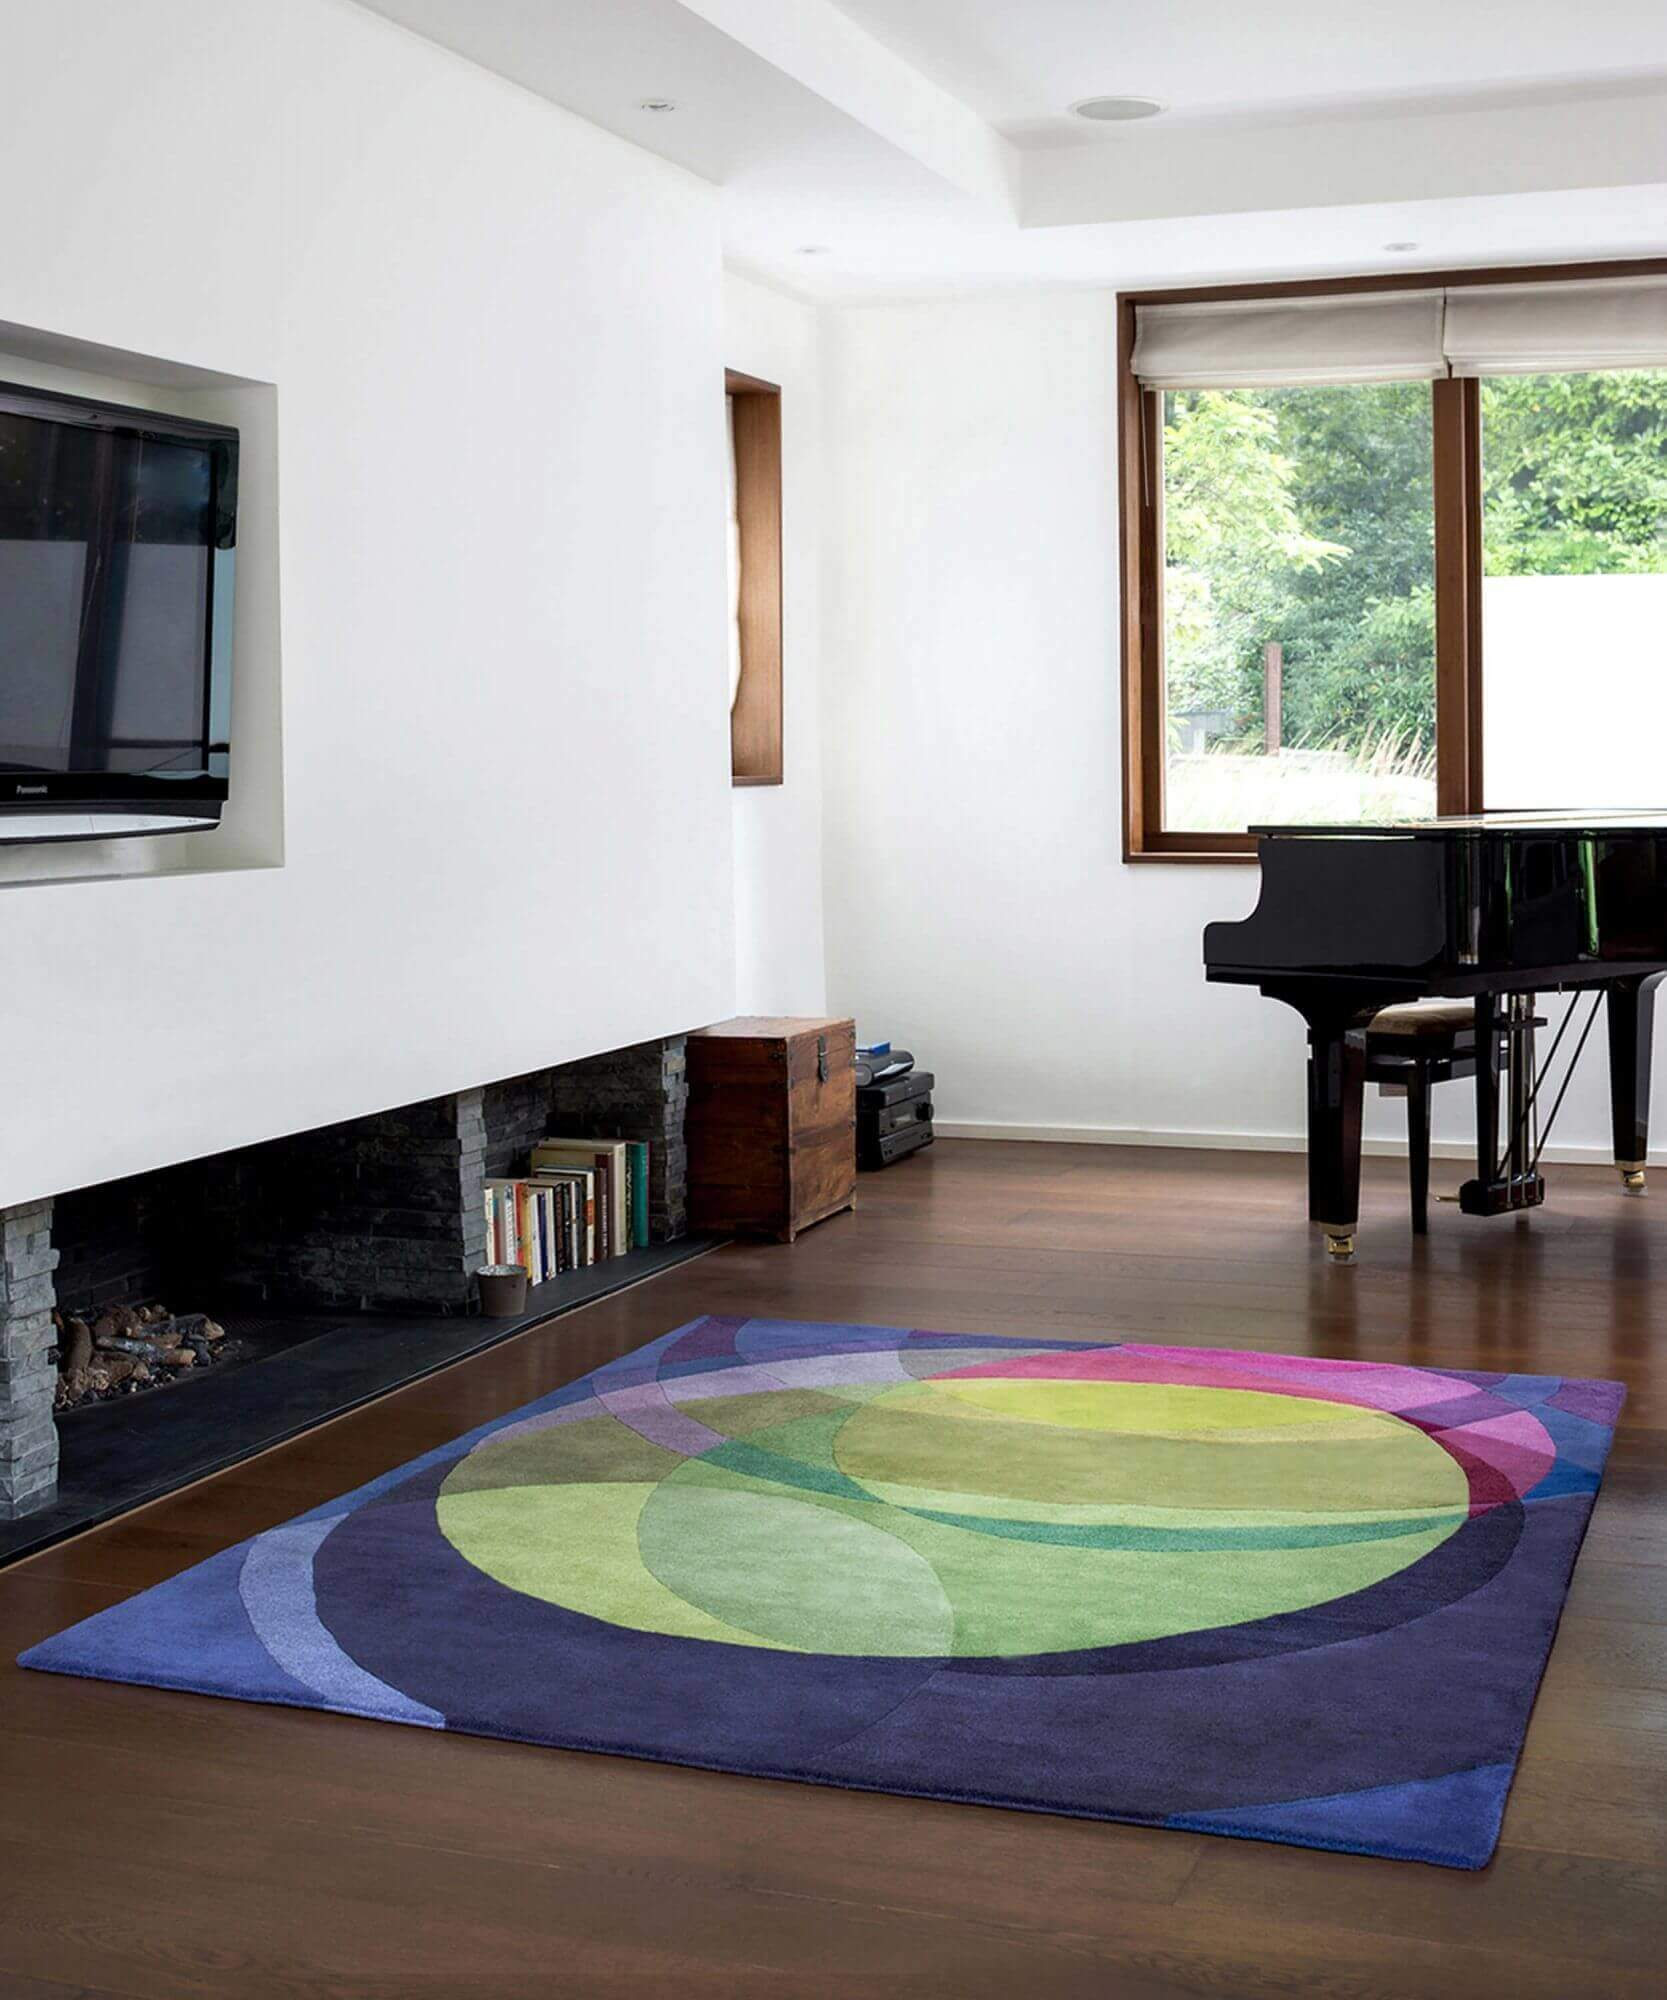 Sonya Winner's Galaxy abstract carpet for sale, shown in a large contemporary living room with Bosendorfer piano and Ortal fireplace